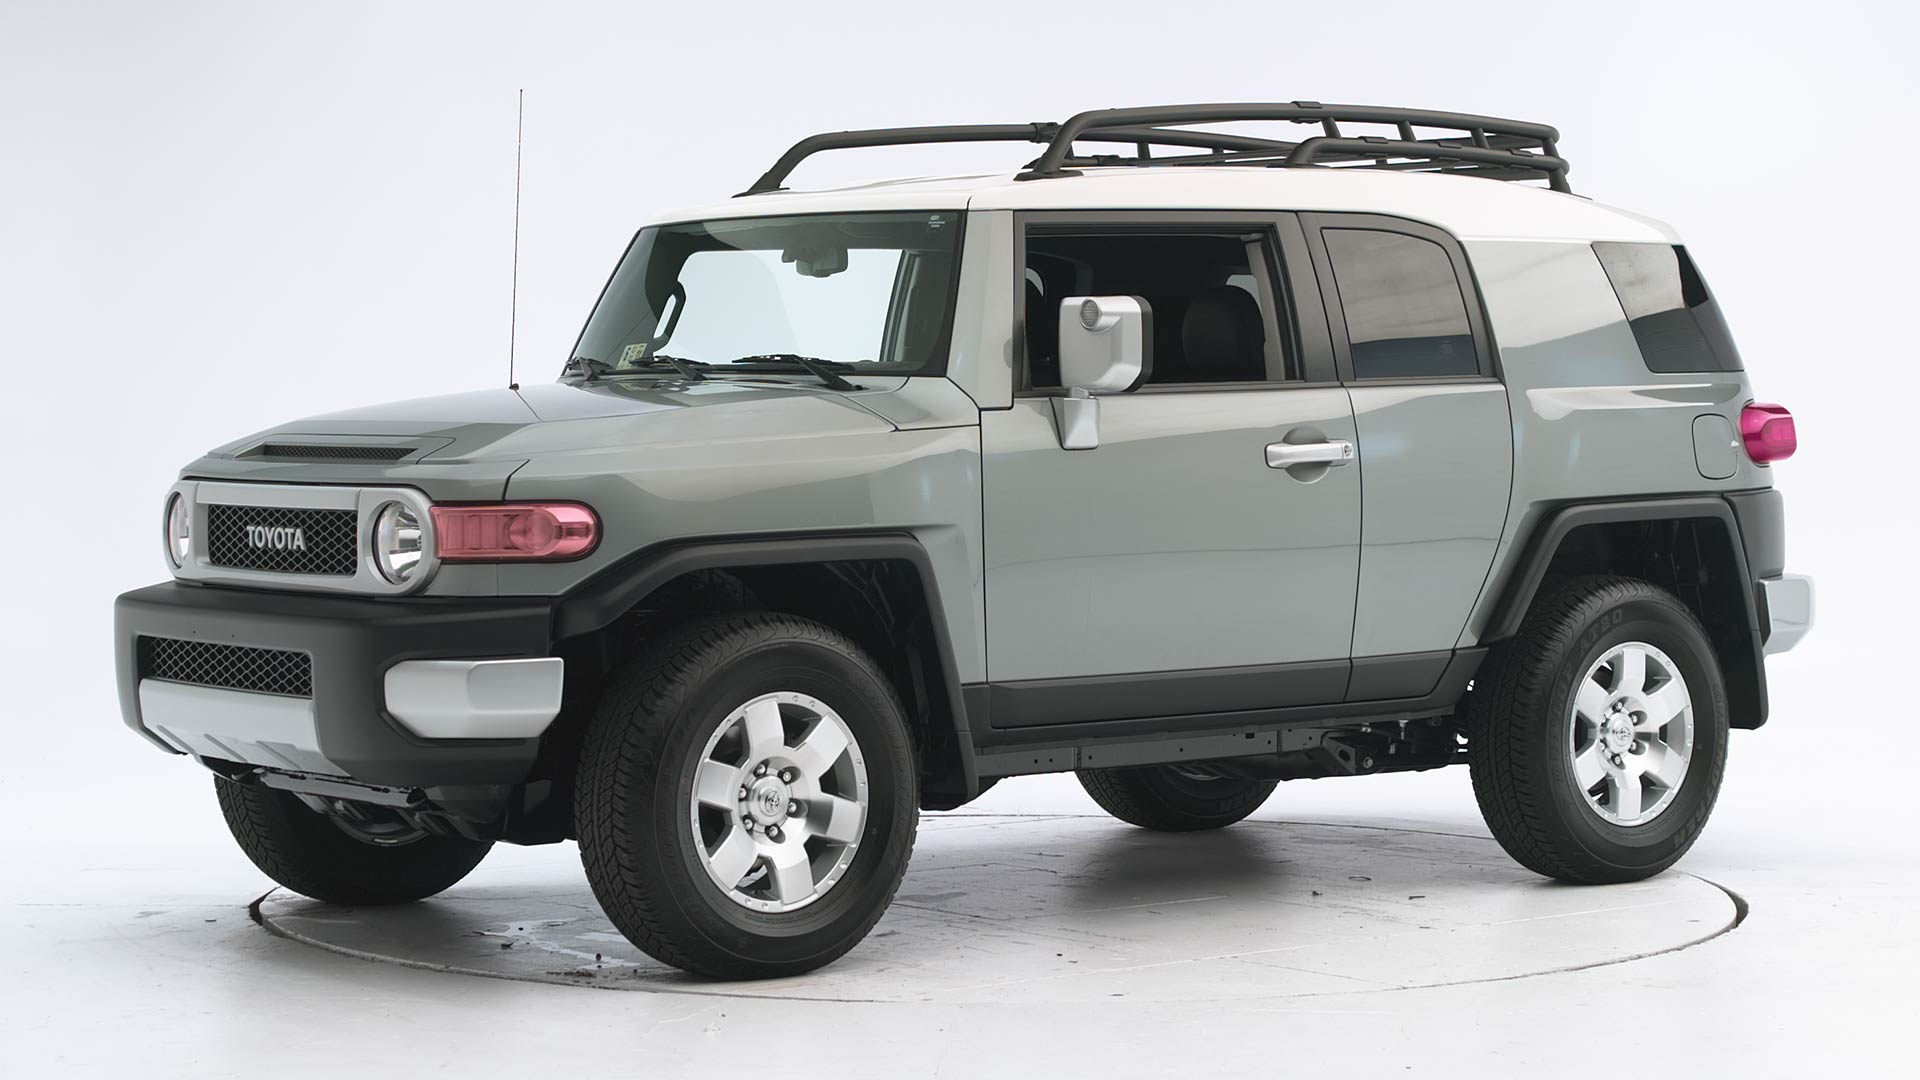 2011 Toyota FJ Cruiser 4-door SUV